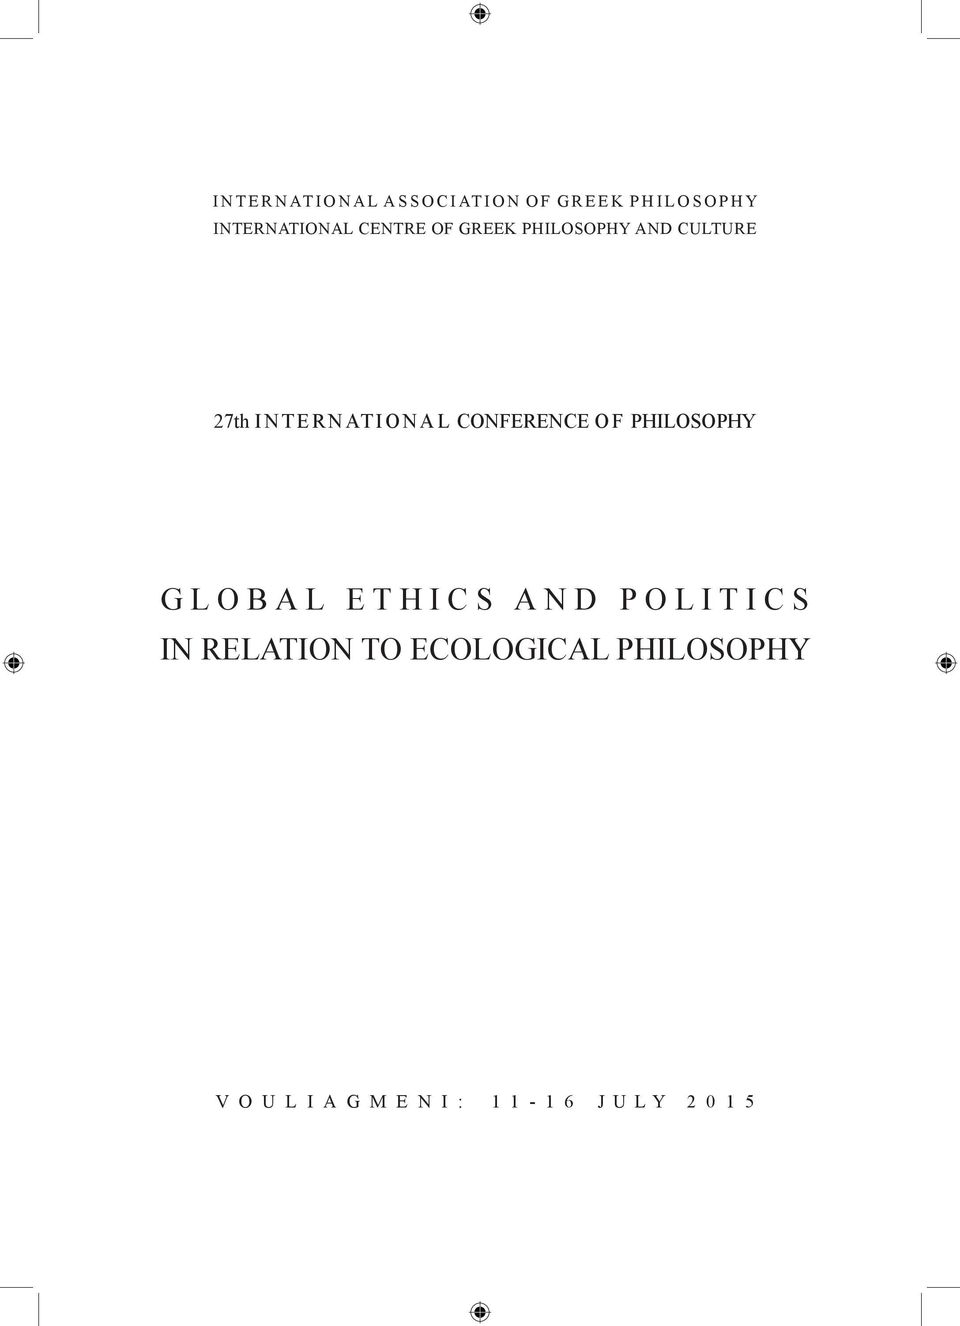 CONFERENCE O F PHILOSOPHY GLOBAL ETHICS AND POLITICS IN RELATION